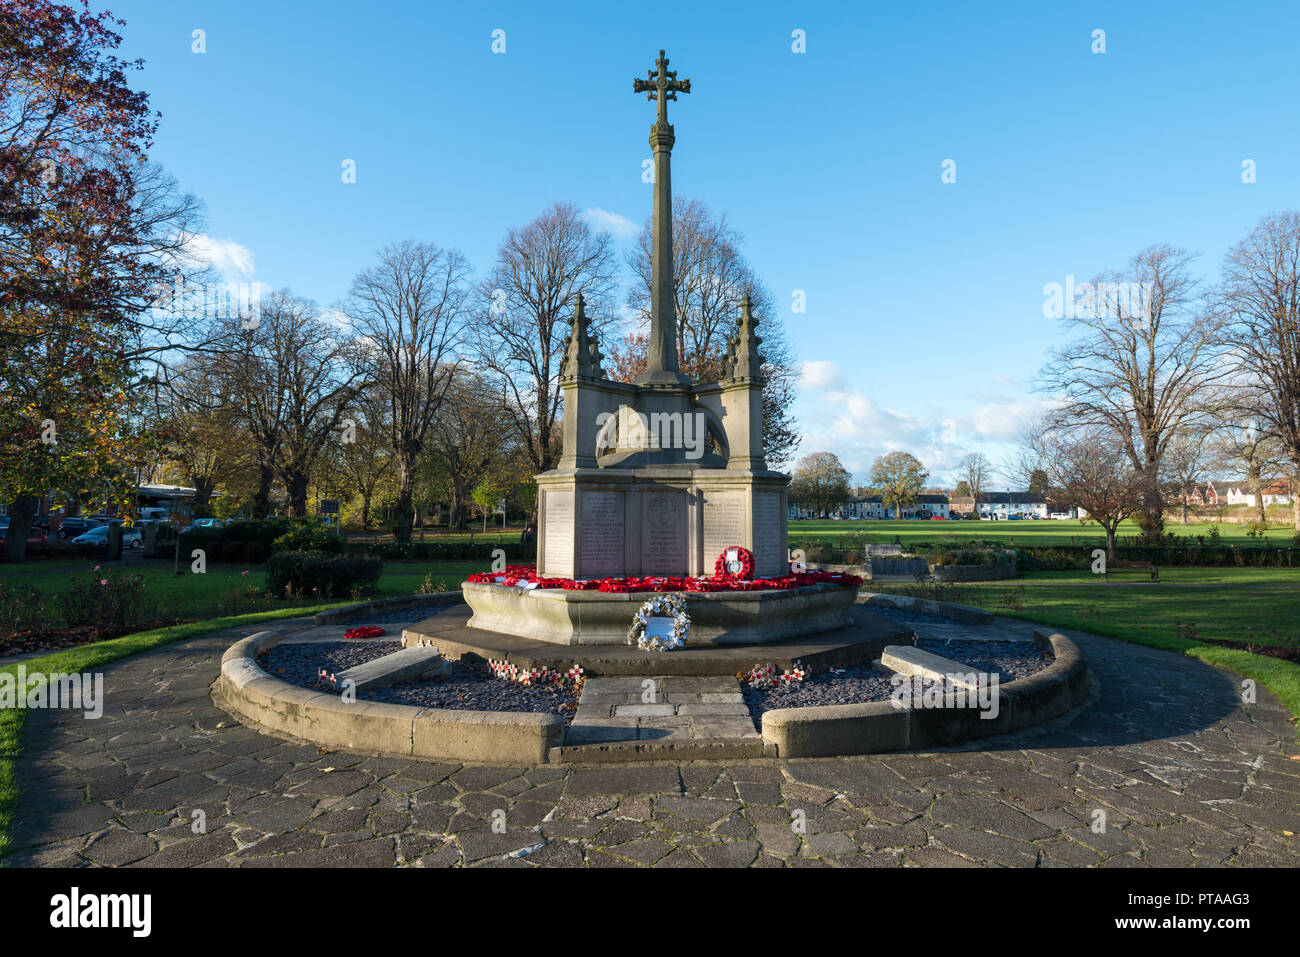 Red poppy wreaths on a war memorial in Chichester, West Sussex, UK.​ - Stock Image